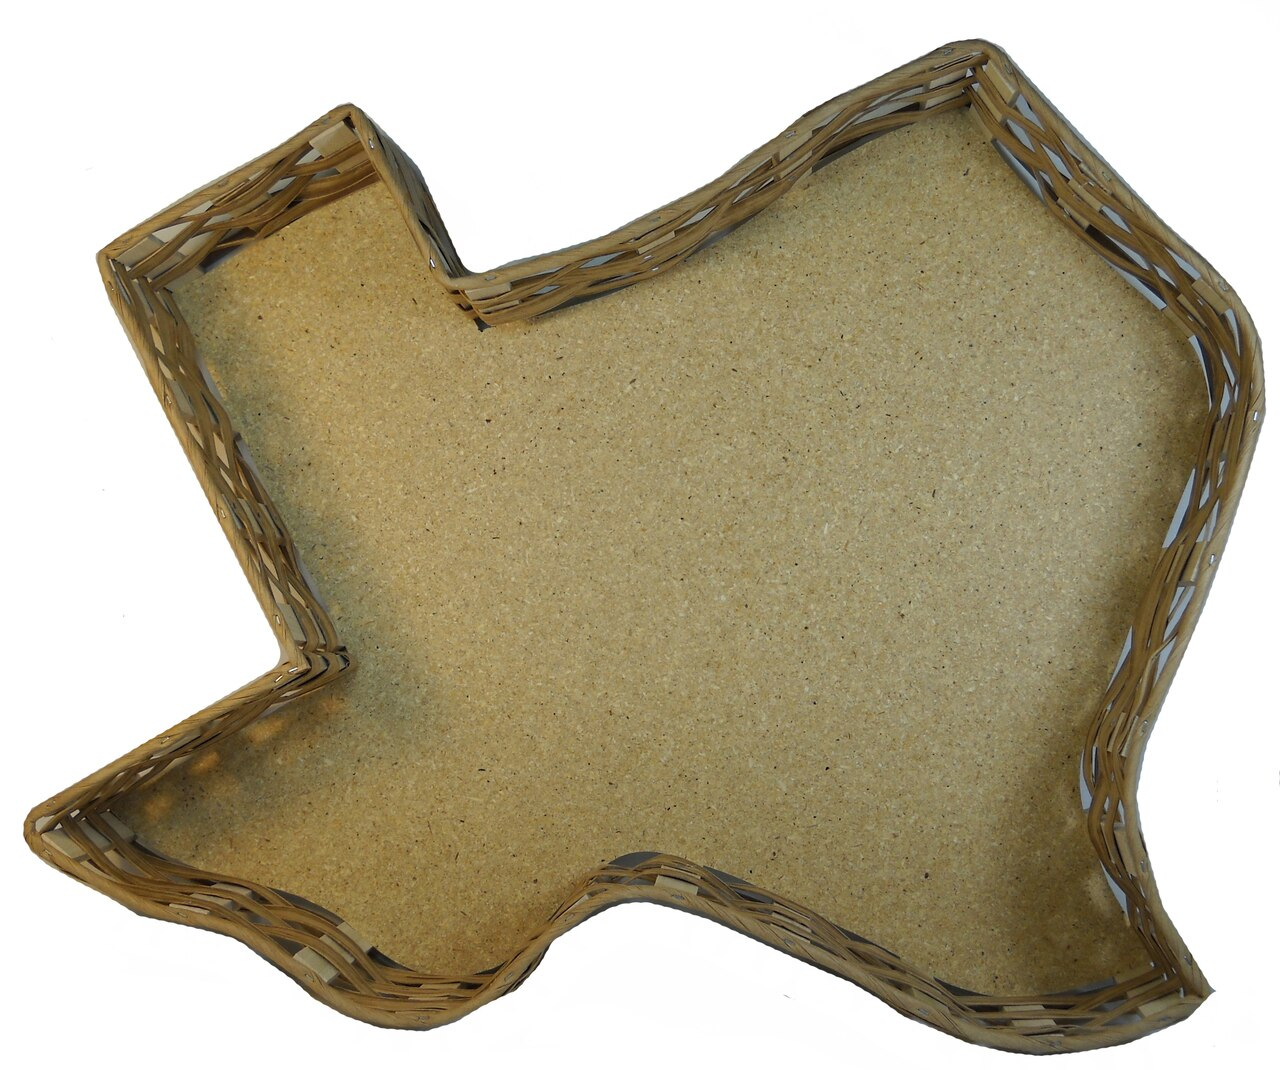 22 Inch Texas Shaped Basket 1